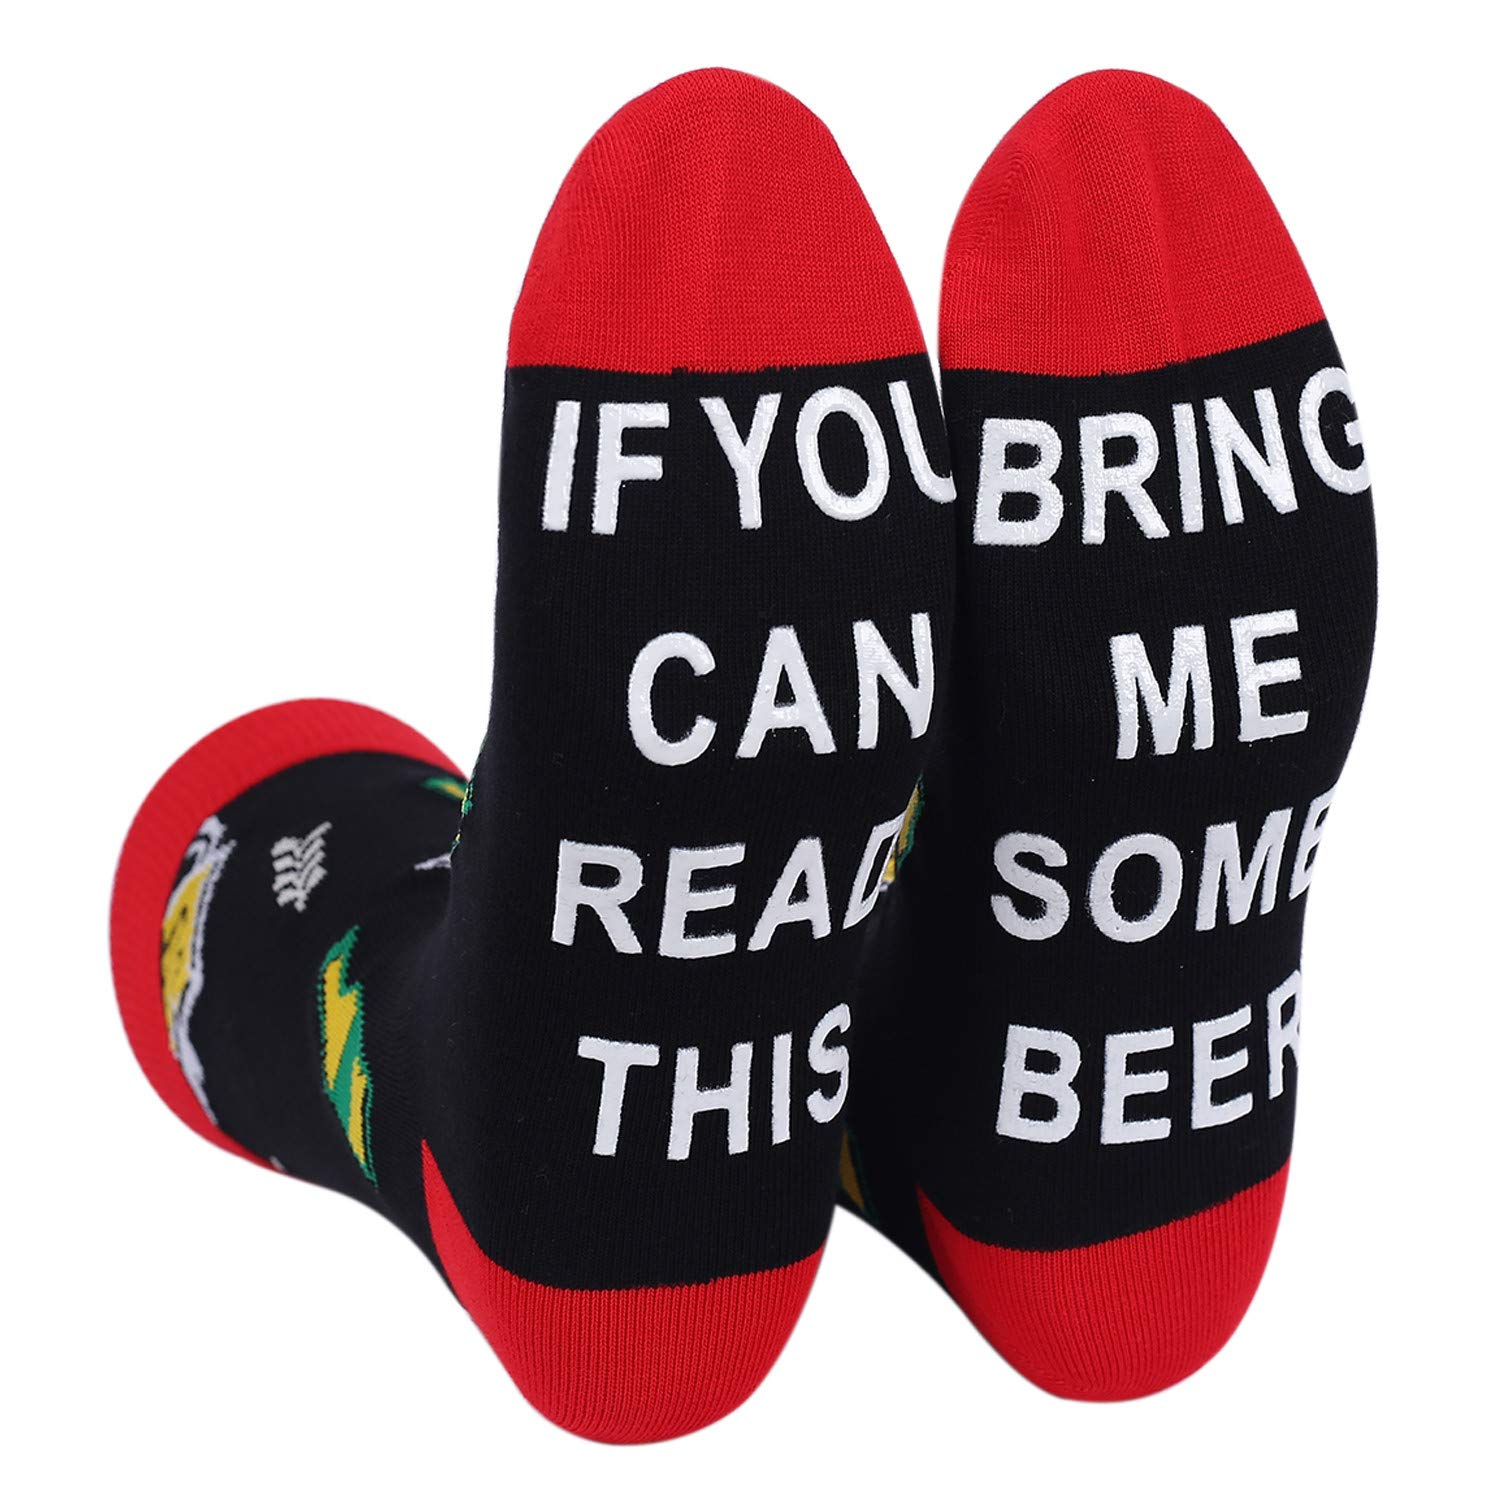 Great socks for my Tea and Taco loving friend